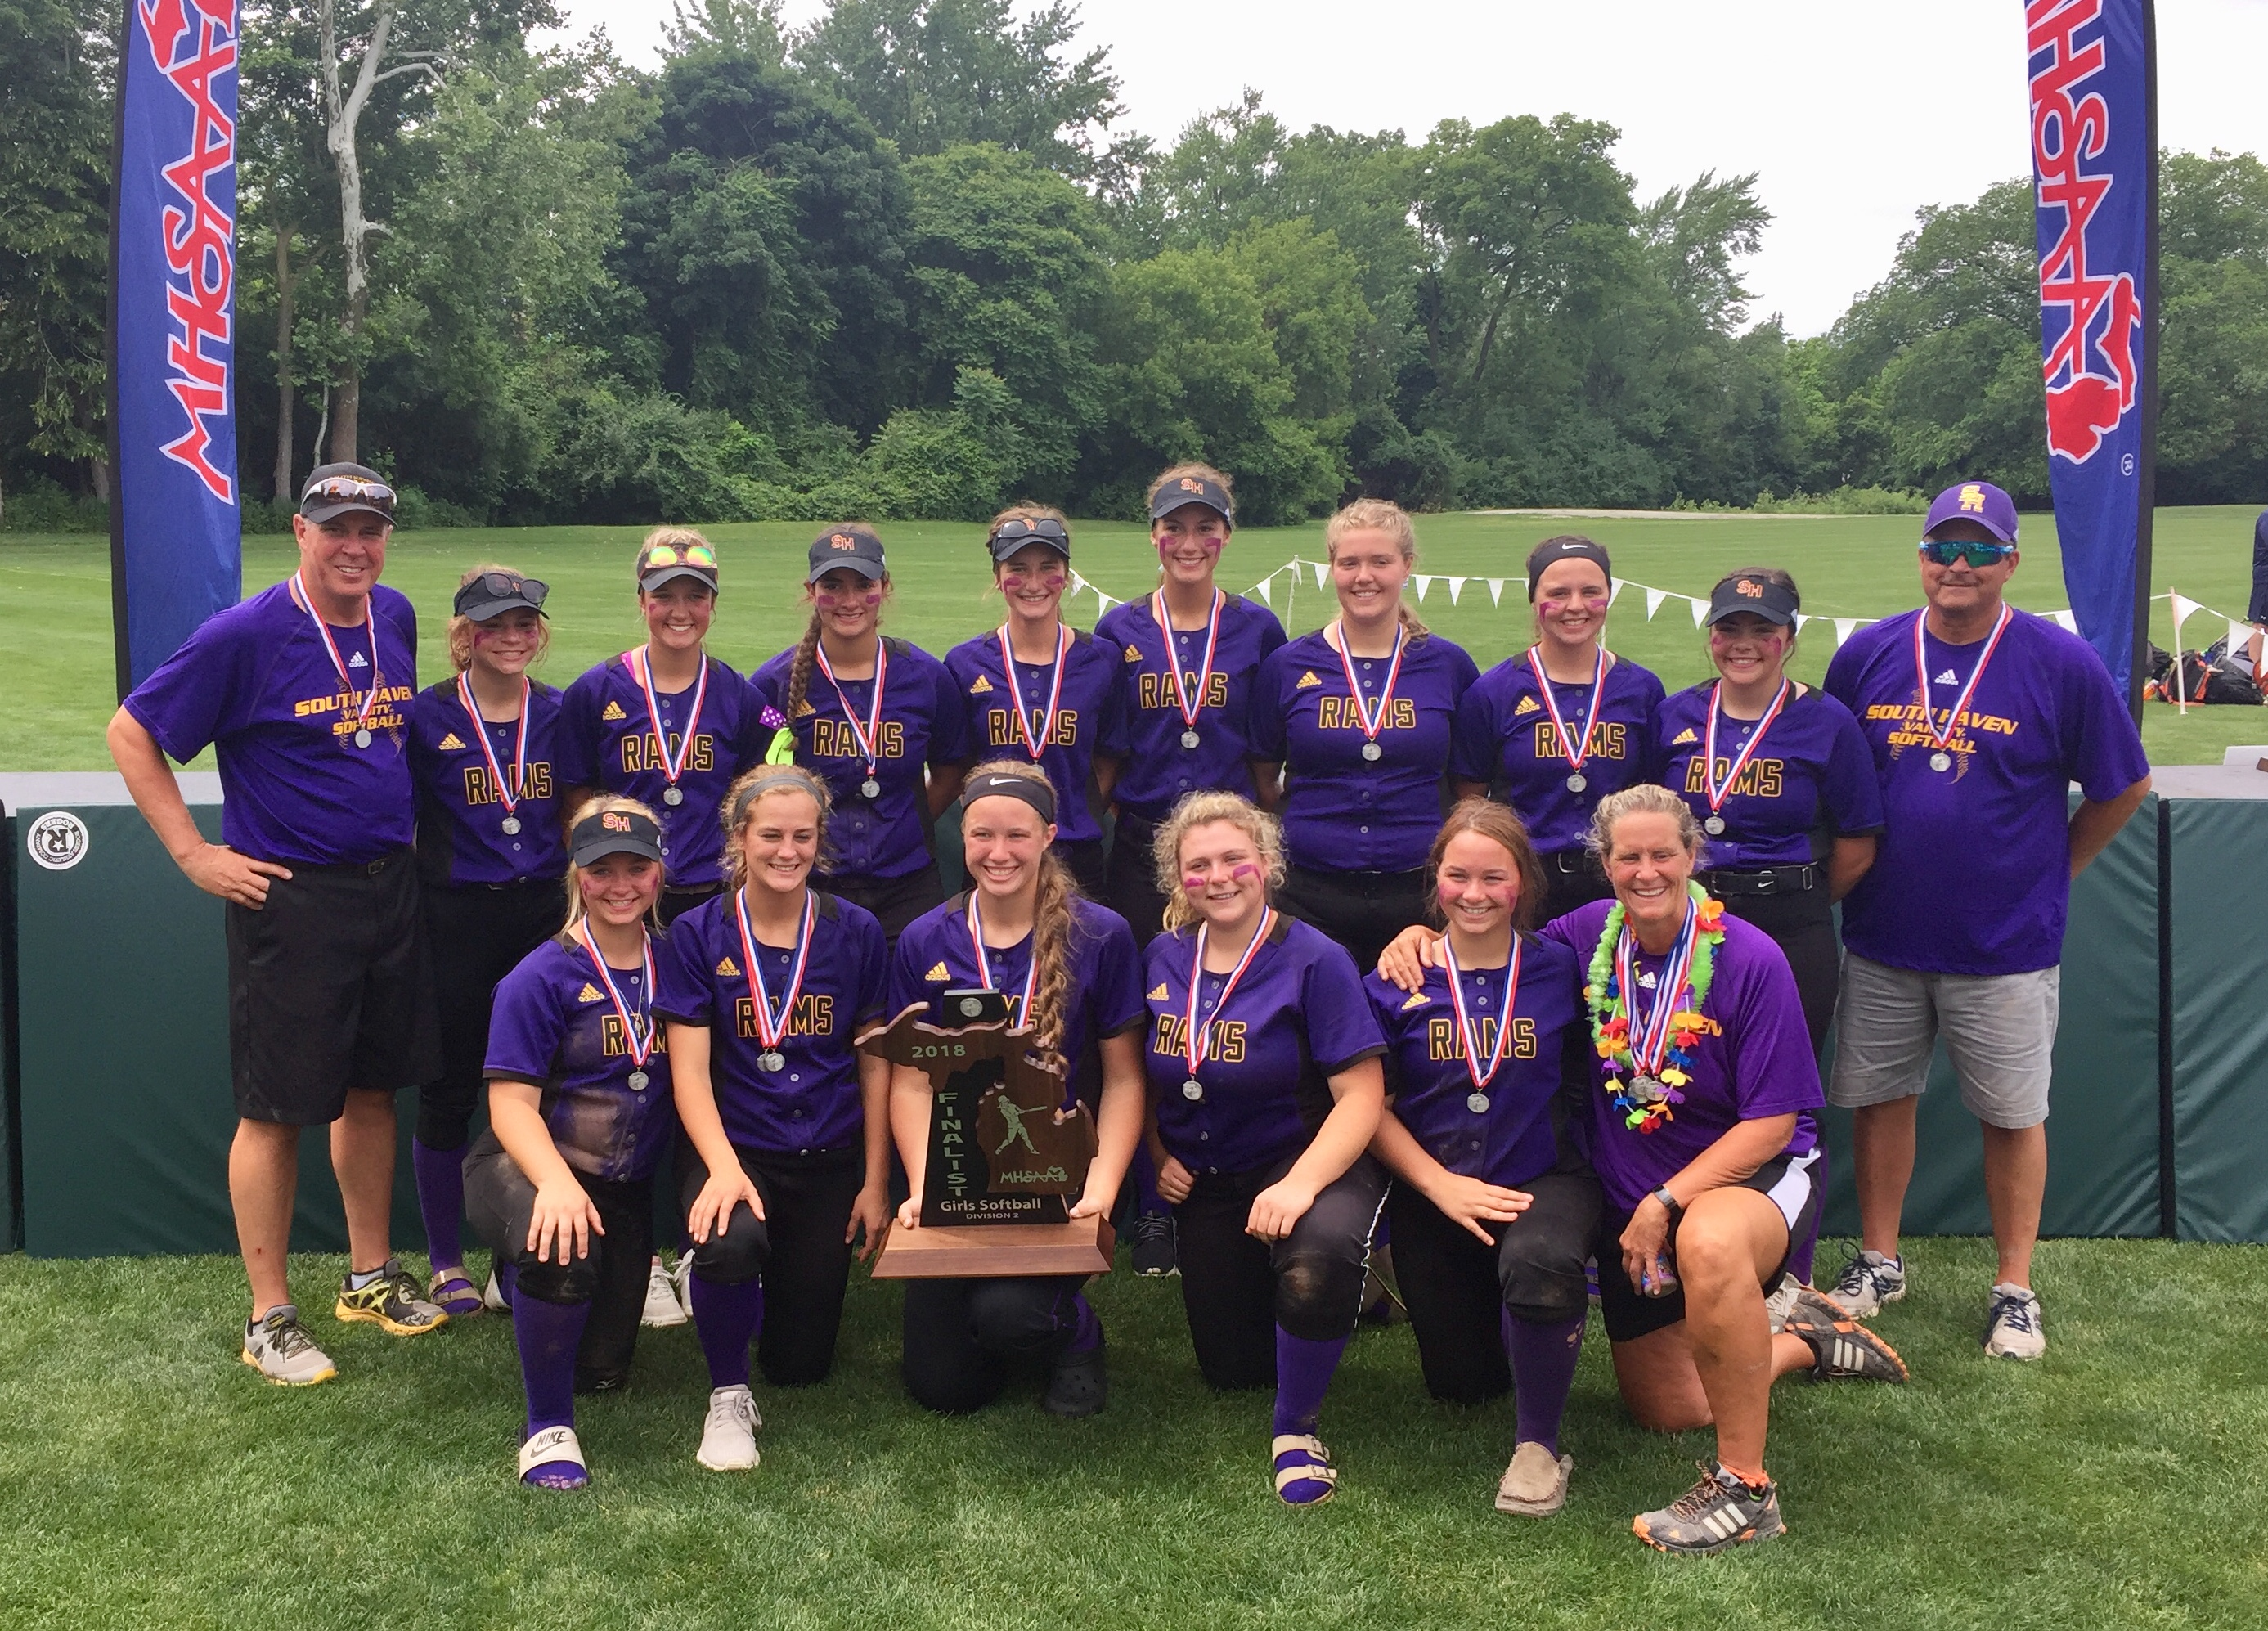 South Haven Softball Team Falls to Escanaba in State Finals